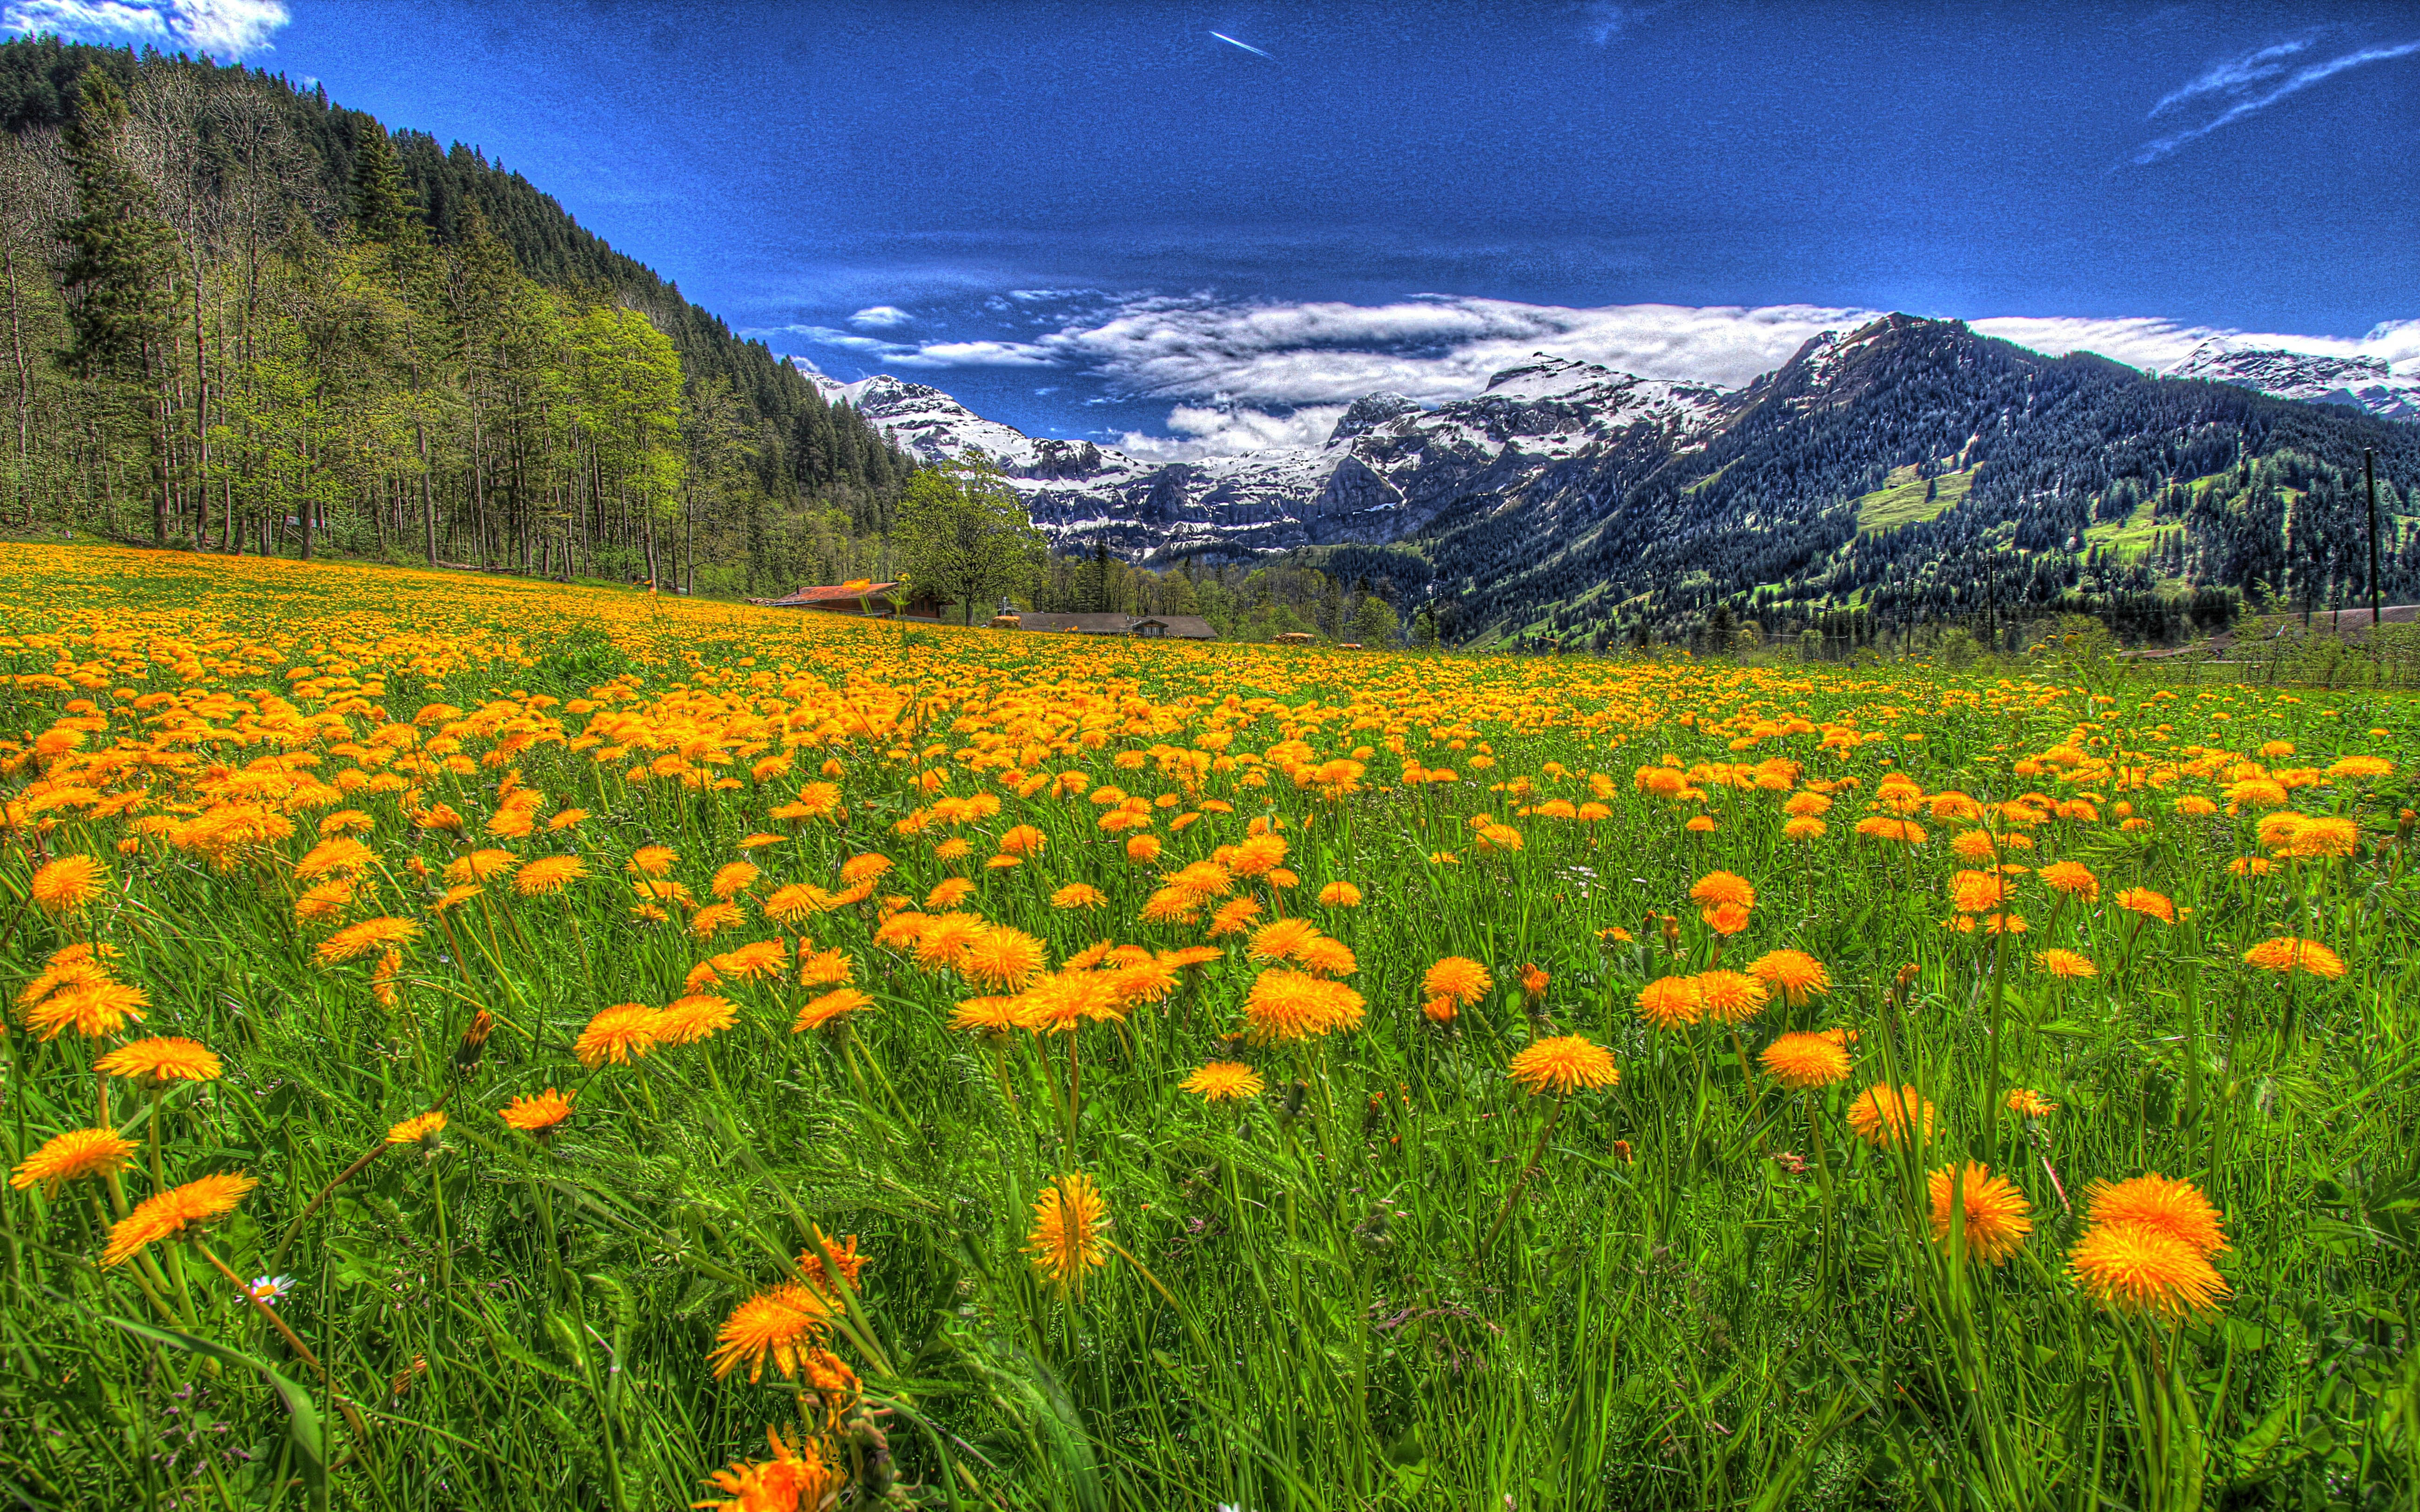 Iphone Wallpaper Cloud Landscape Nature Meadow With Yellow Flowers Of Dandelion